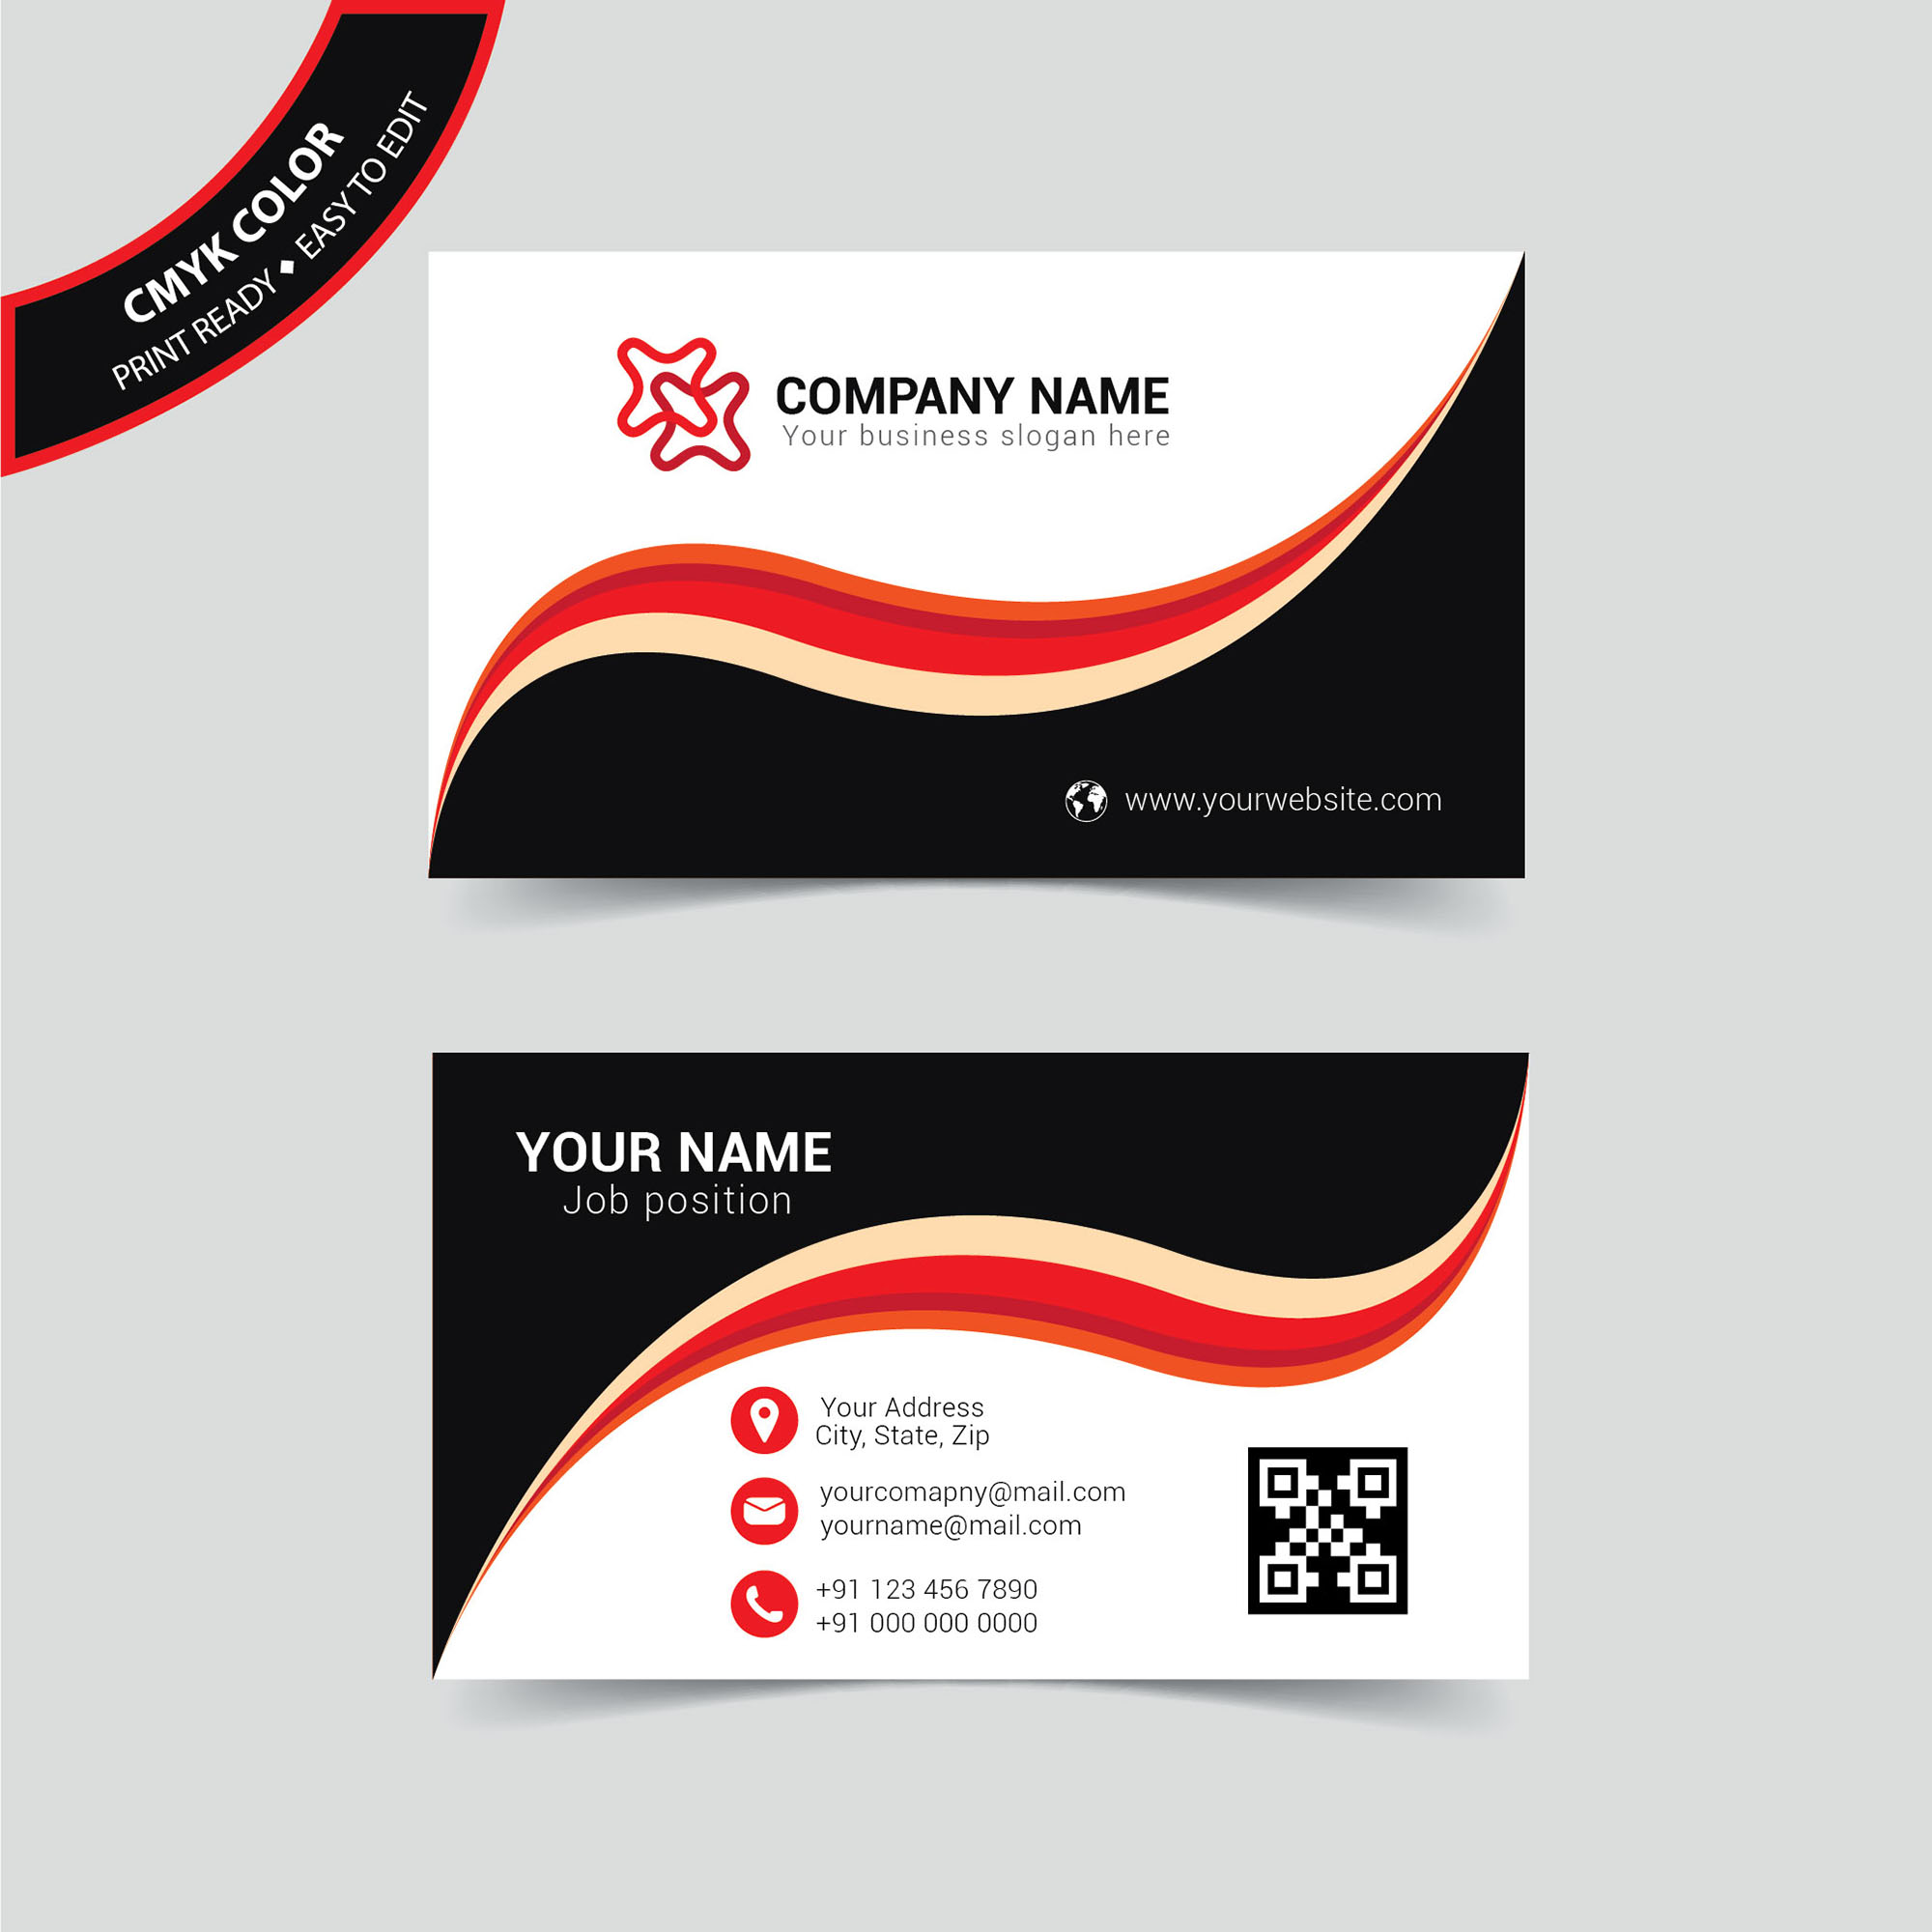 Corporate name card design free download wisxi business card business cards business card design business card template design templates fbccfo